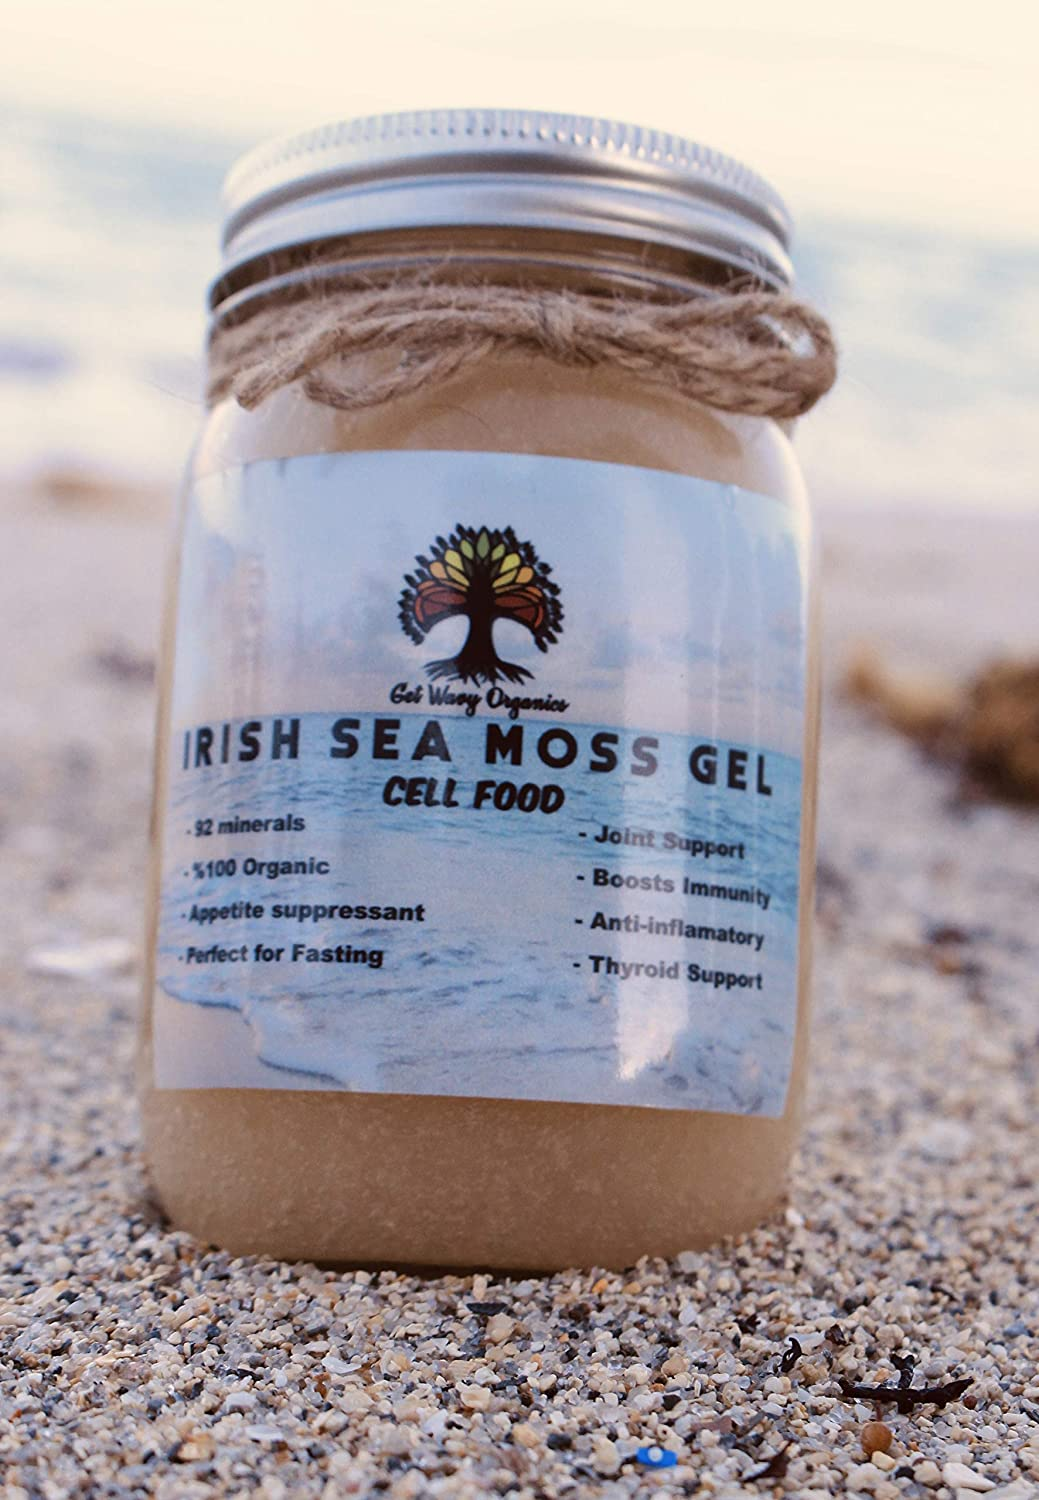 100% Organic Sea Moss Gel - Vegan Super Cell Food Rich in Vitamins A, B, C, D, E, K Calcium and Iodine, Potassium Iodide and Potassium Bromide, Selenium, Zinc and Natural Silica